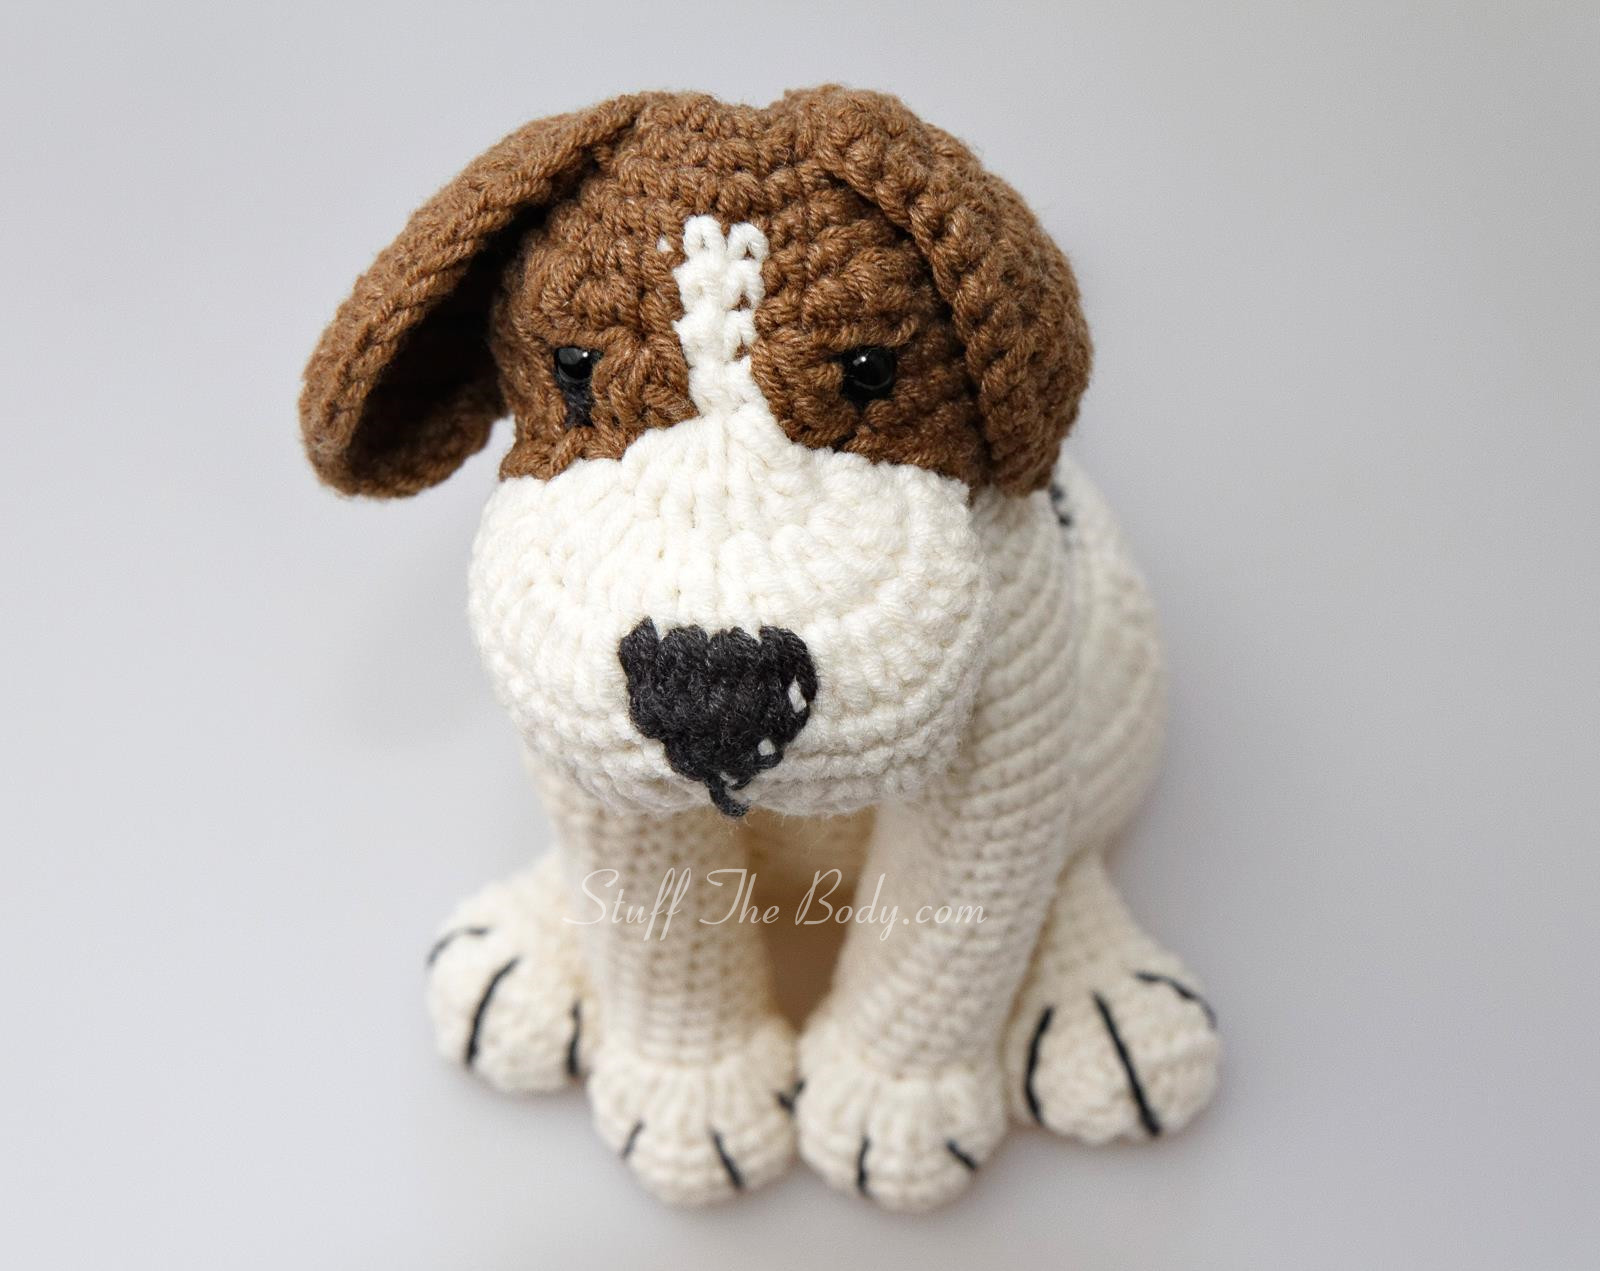 Free Crochet Dog Patterns Beautiful Stuff the Body Of Superb 45 Pictures Free Crochet Dog Patterns